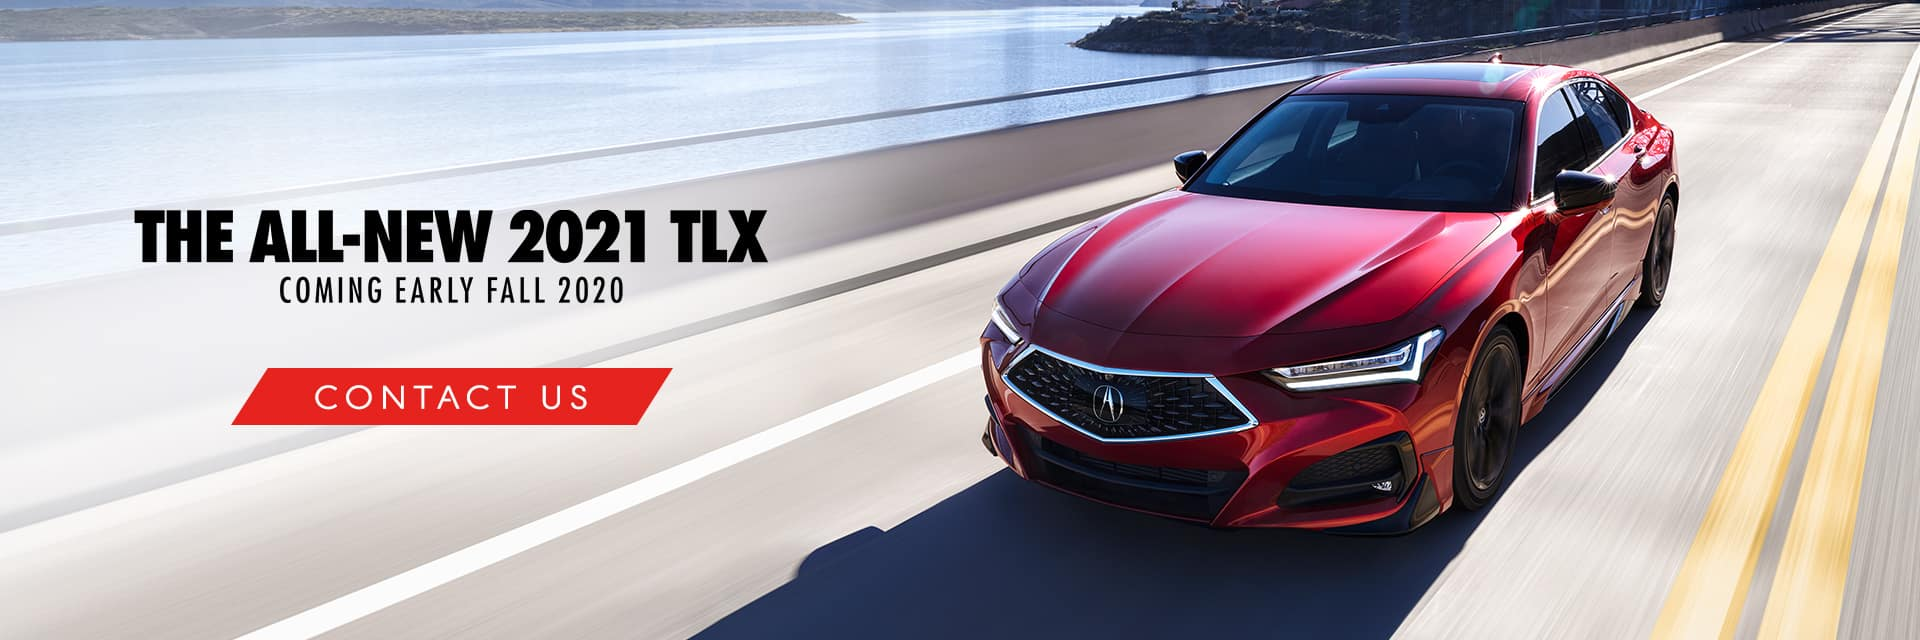 All-New 2021 TLX Reveal